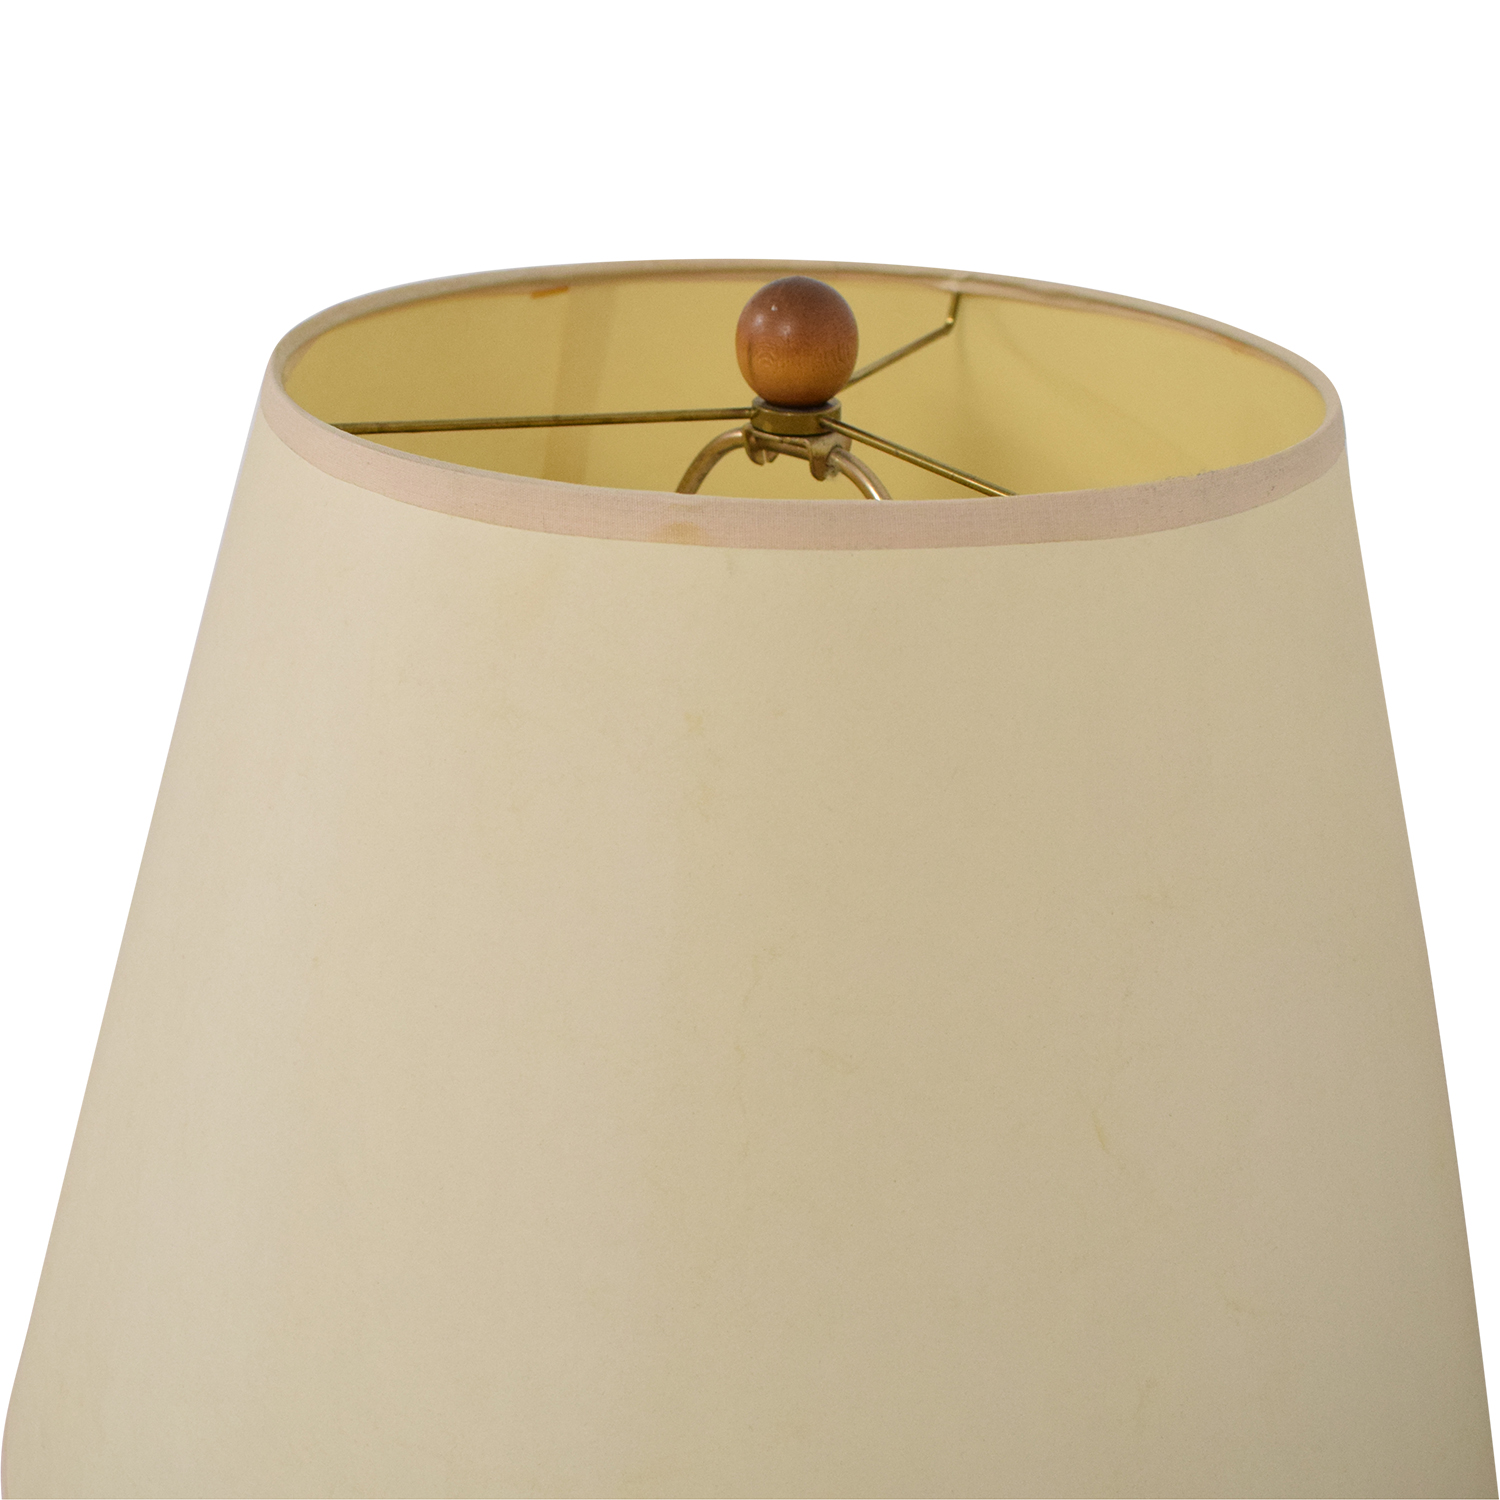 buy  Vintage Decorative Table Lamp online